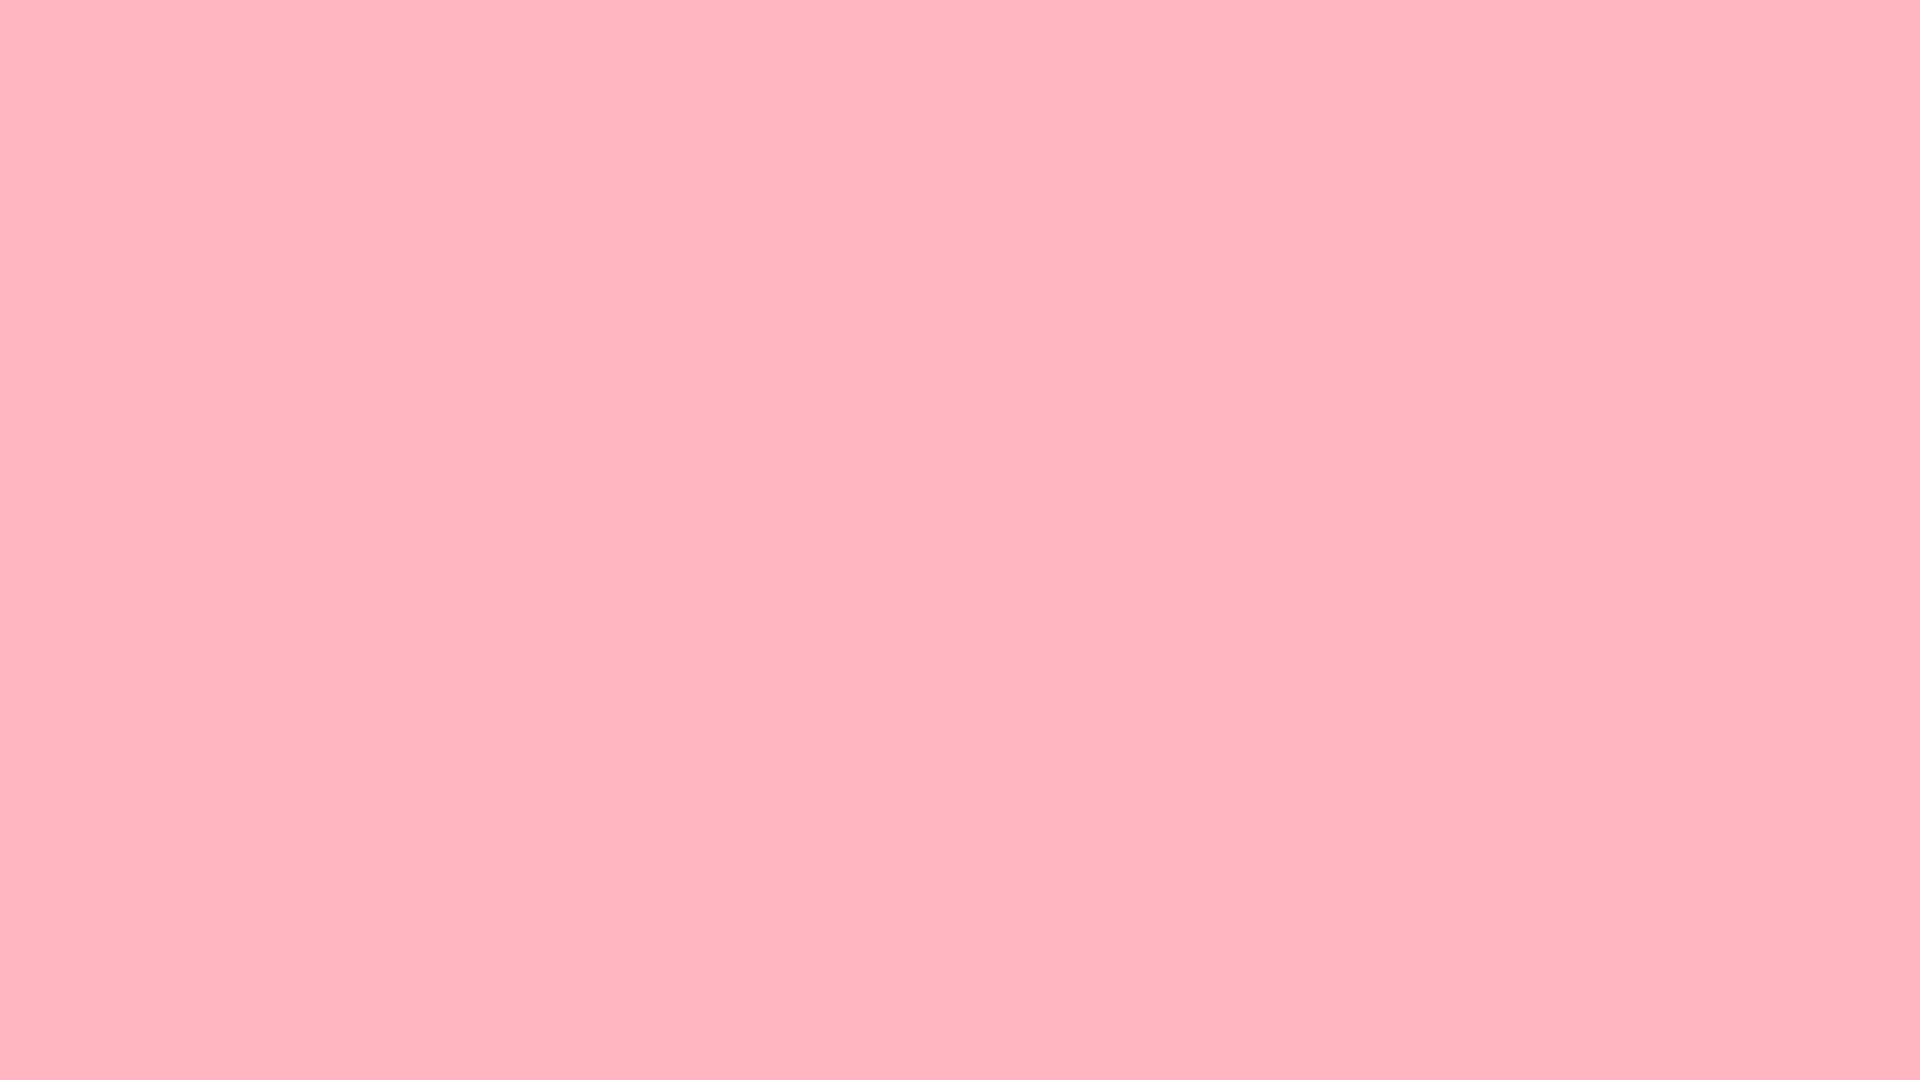 pale pink color background - photo #16